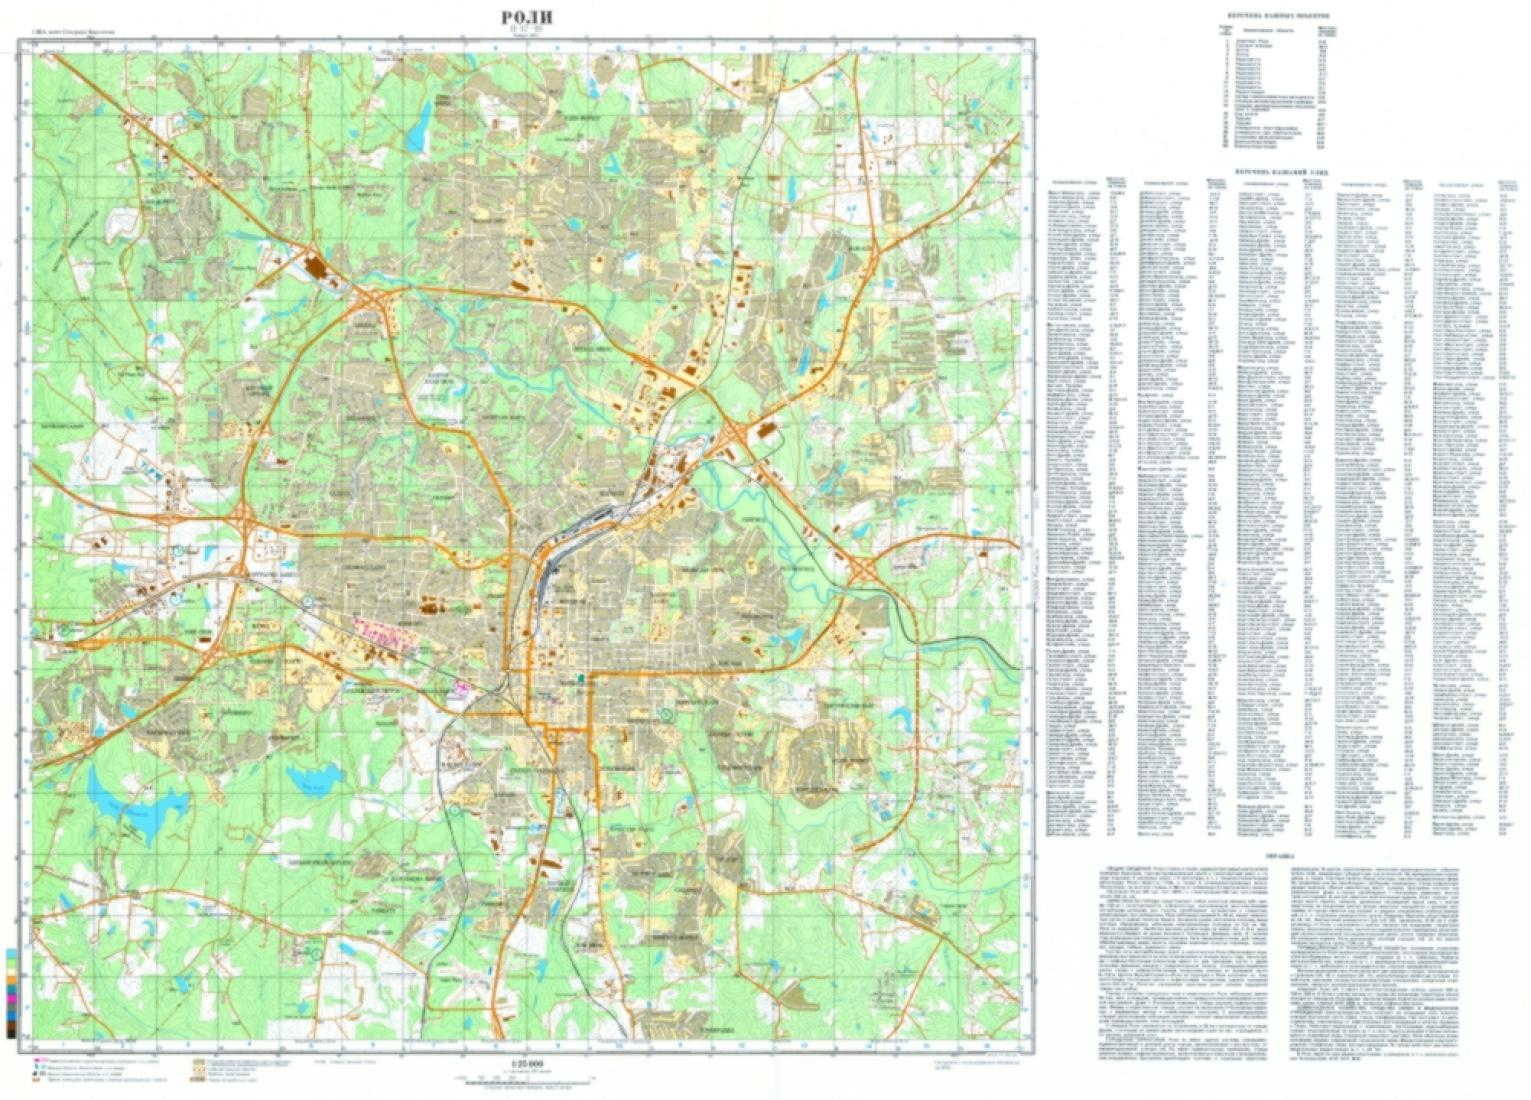 Raleigh, North Carolina, Cold War Map by USSR Ministry of Defense